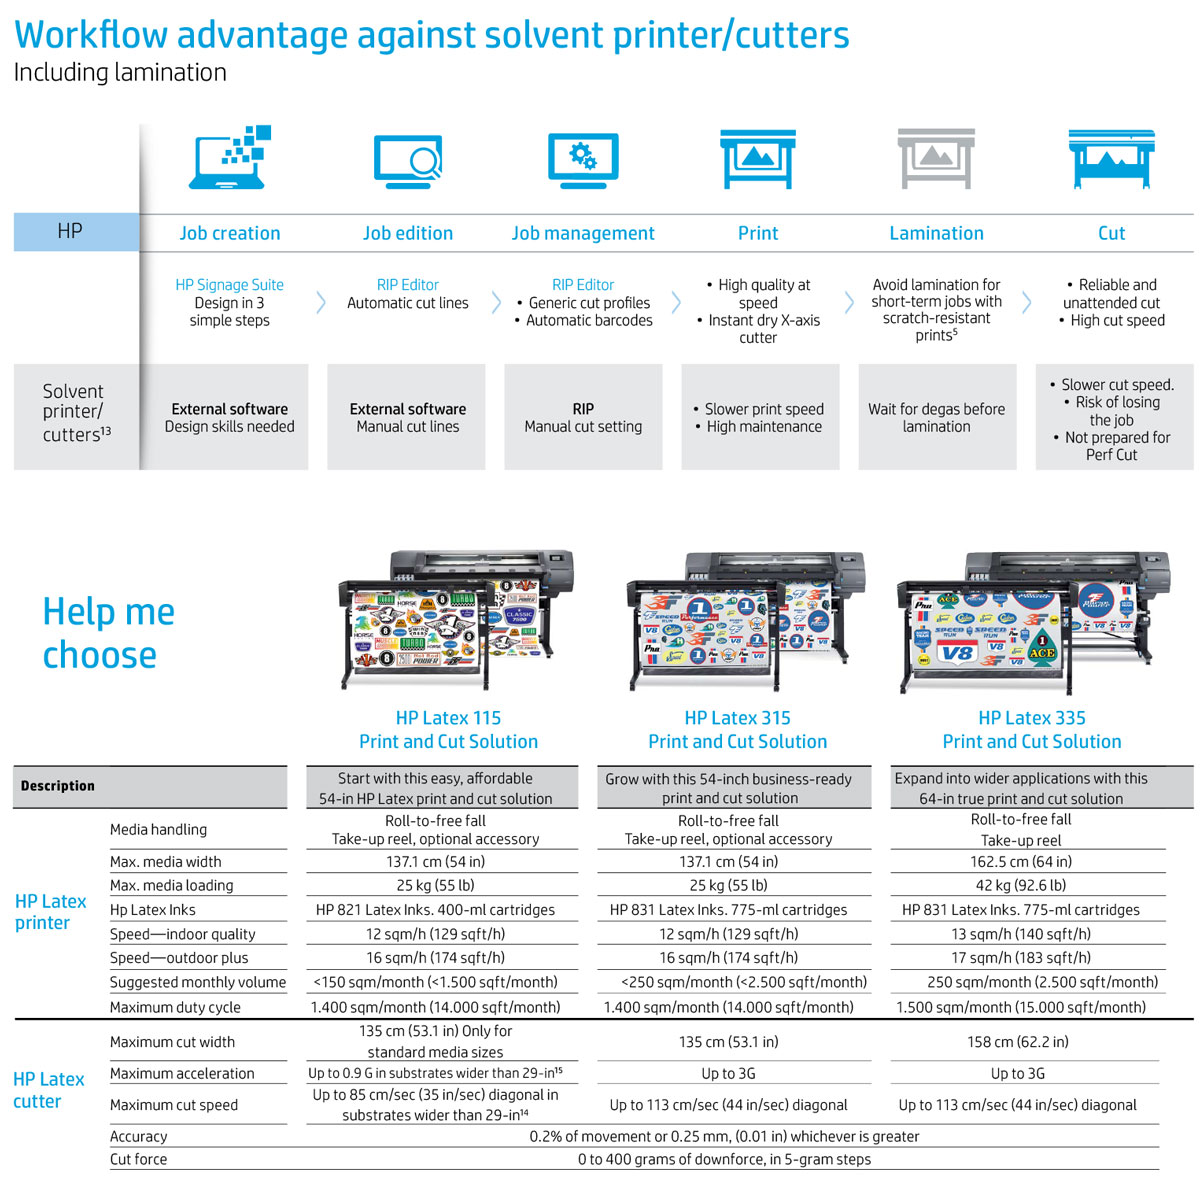 hp latex 315 print and cut solution comparison to 335 and 115 and eco solvent printer workflow